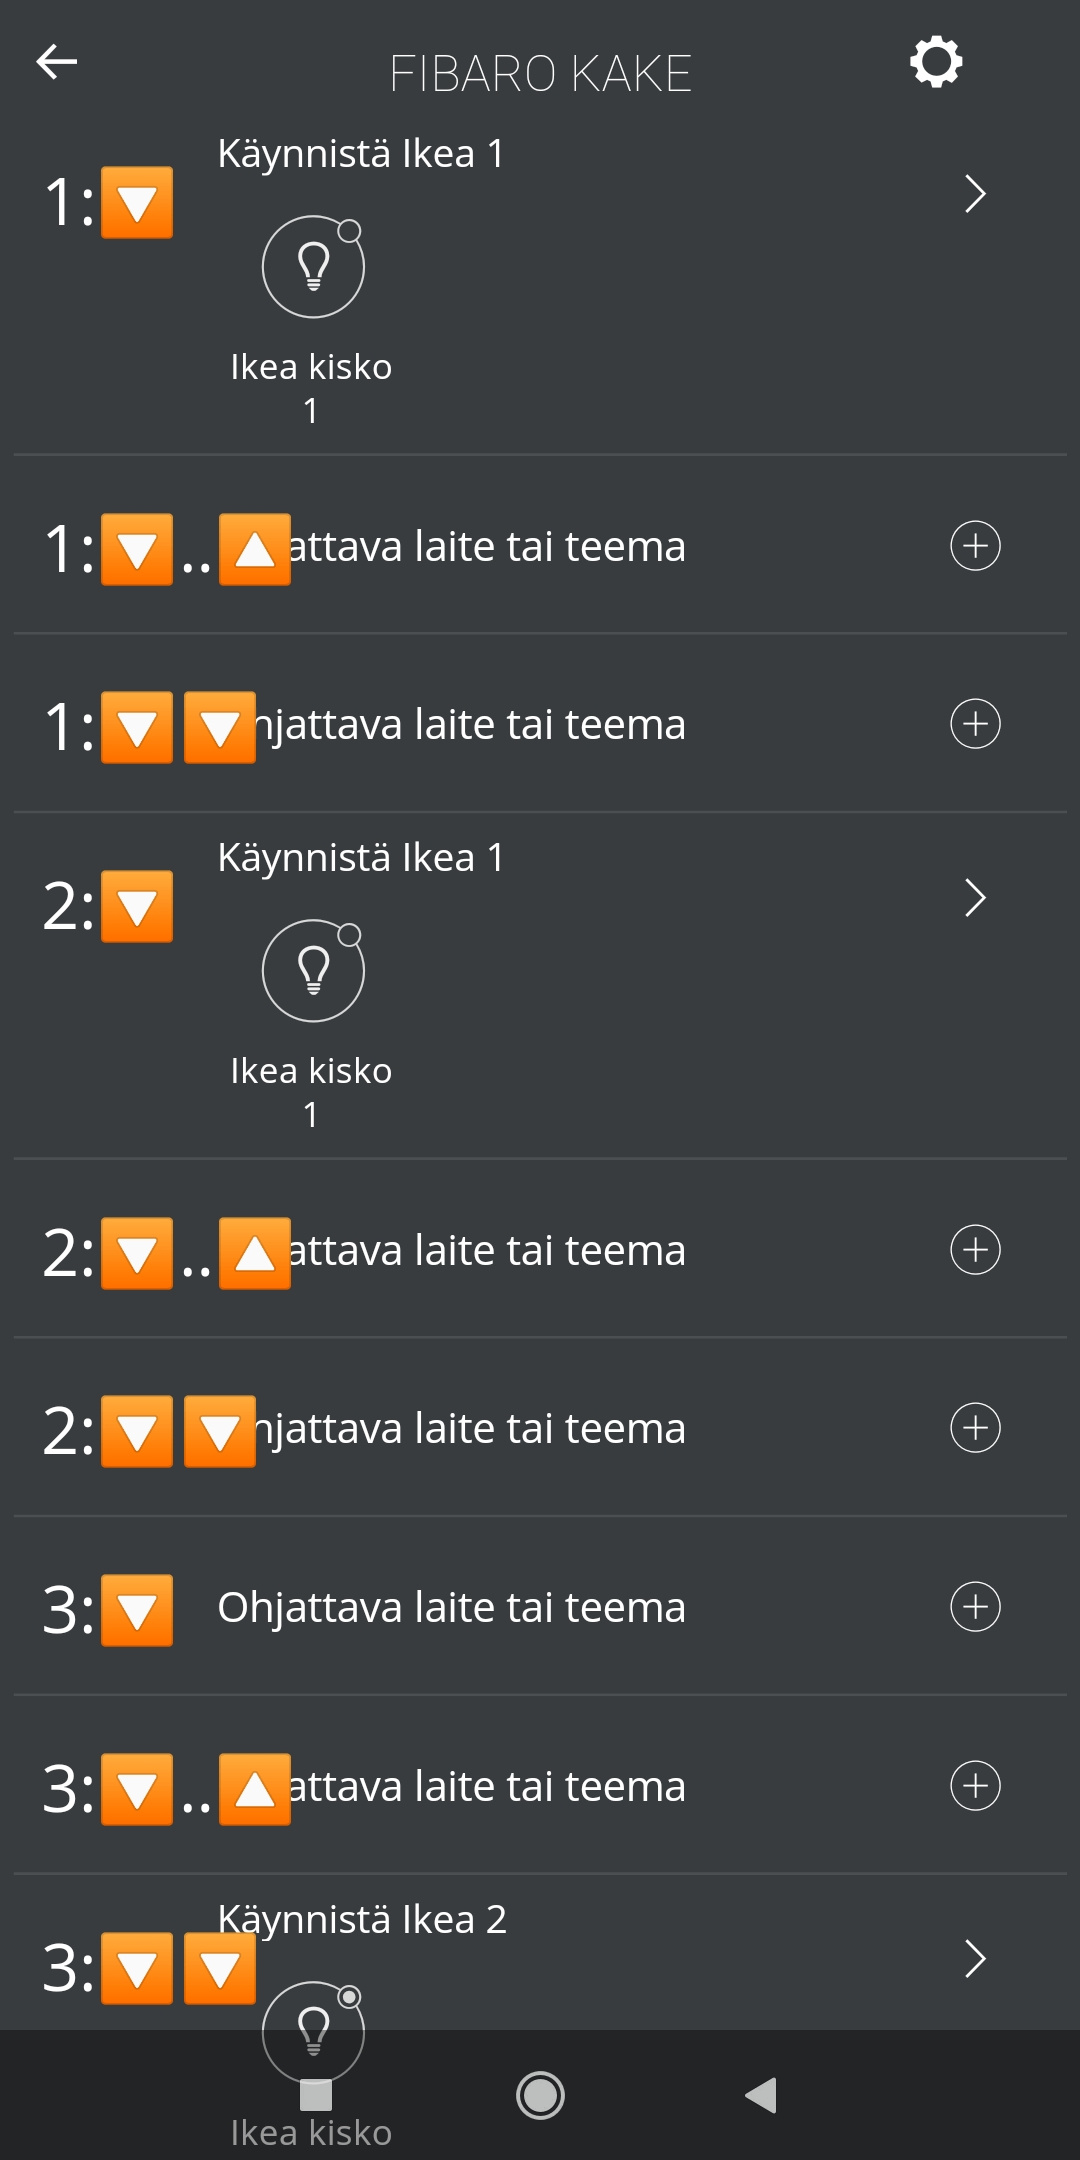 Screenshot_2020-09-13-20-09-39-087_fi.cozify.app.jpg